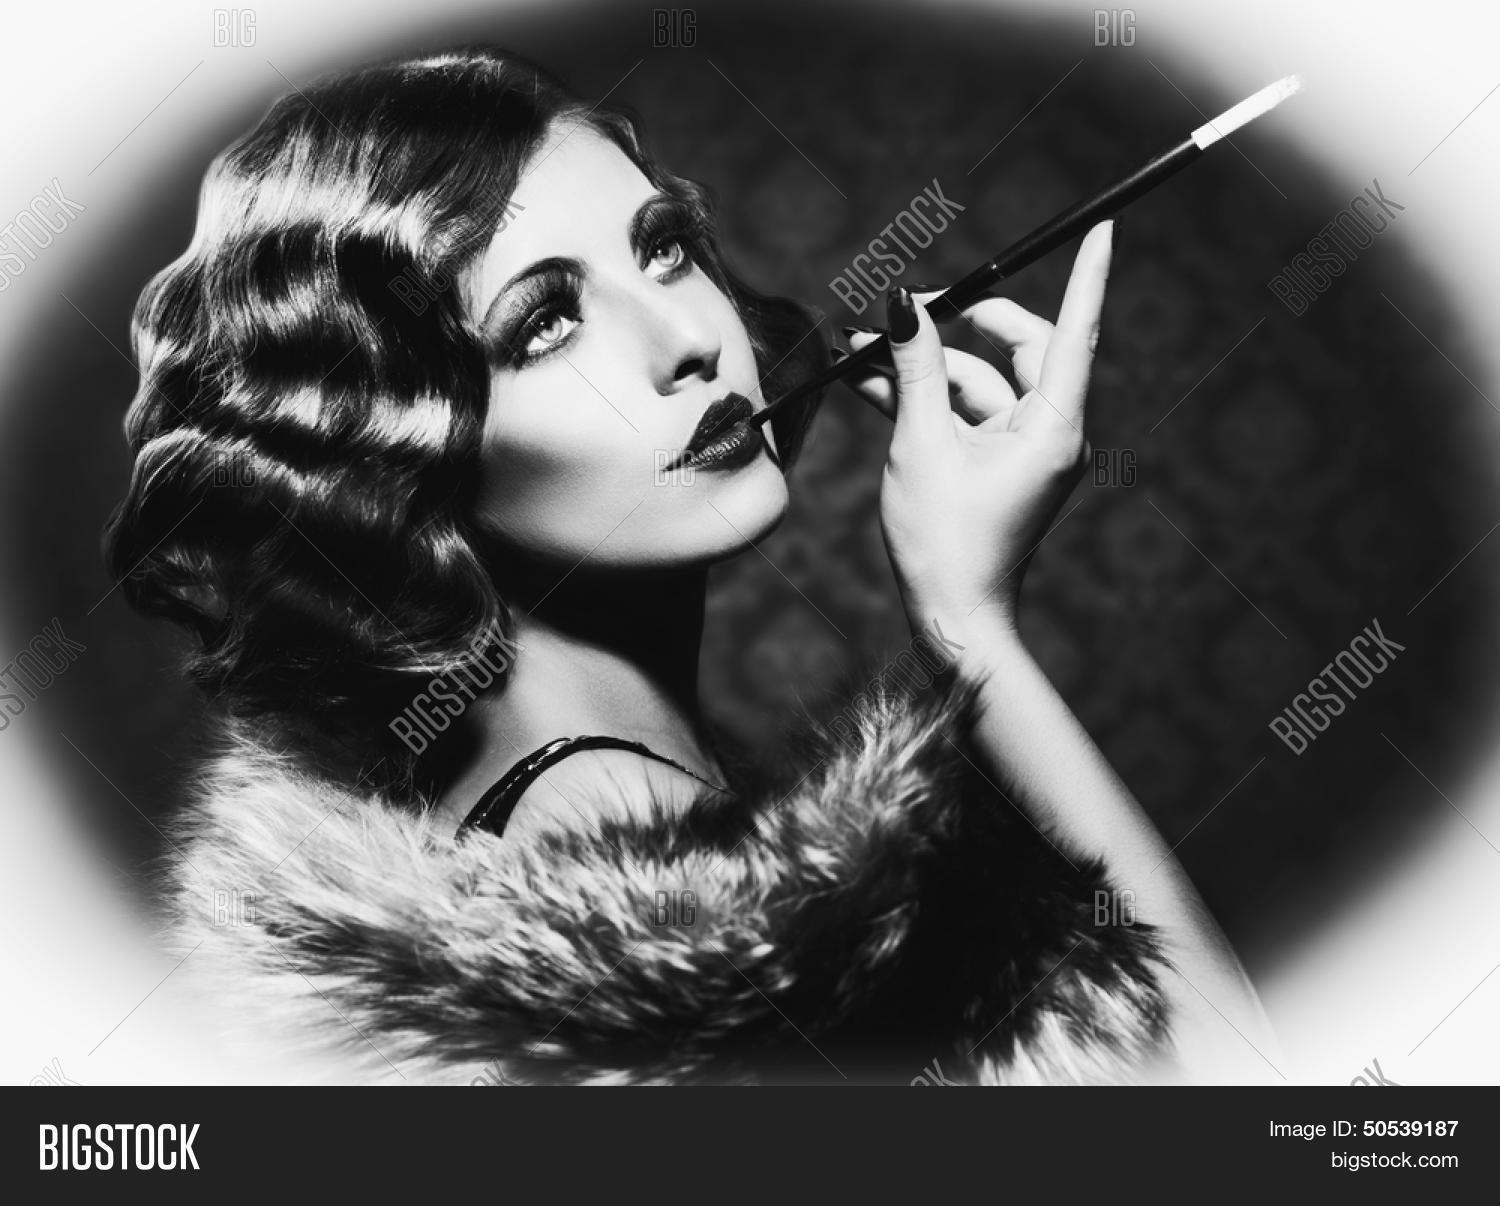 Retro woman portrait beautiful woman with mouthpiece cigarette smoking lady vintage styled